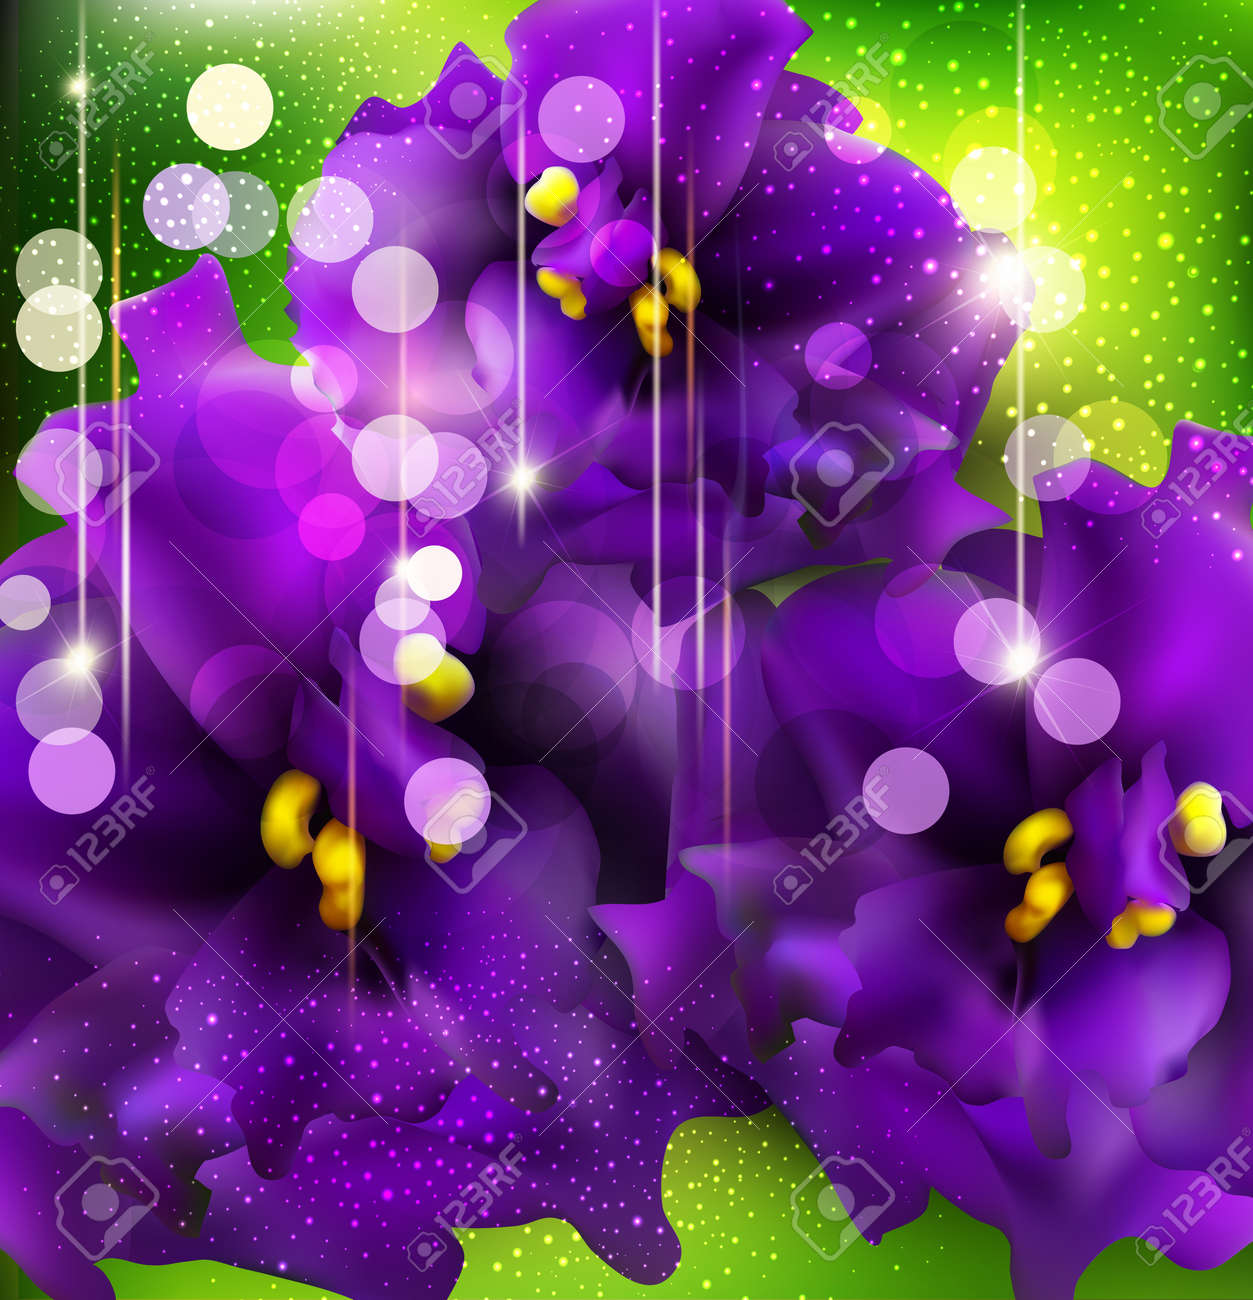 vector background with romantic violets on a green background Stock Vector - 13109667